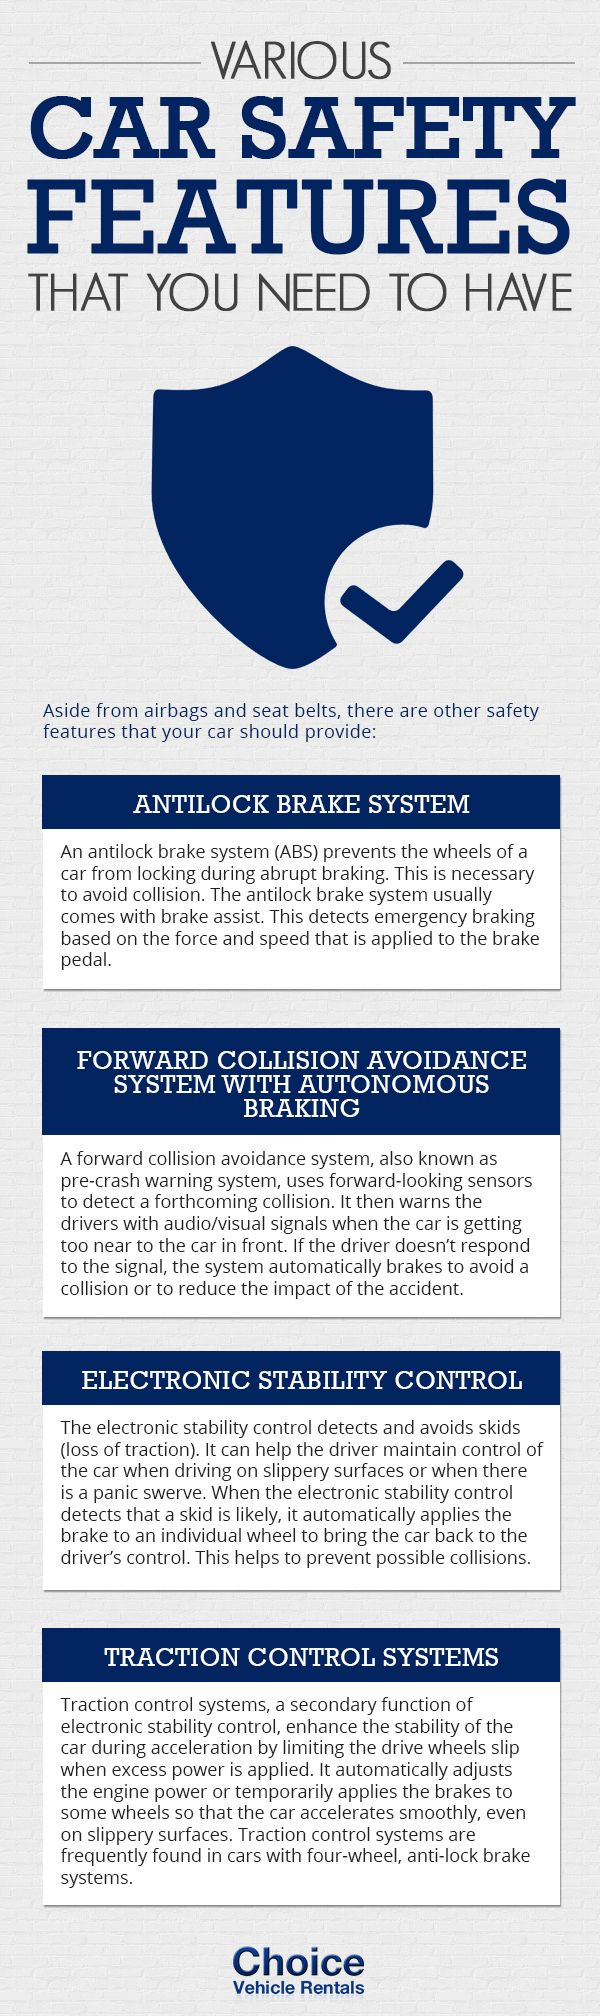 #infographic: Various Car Safety Features That You Need To Have